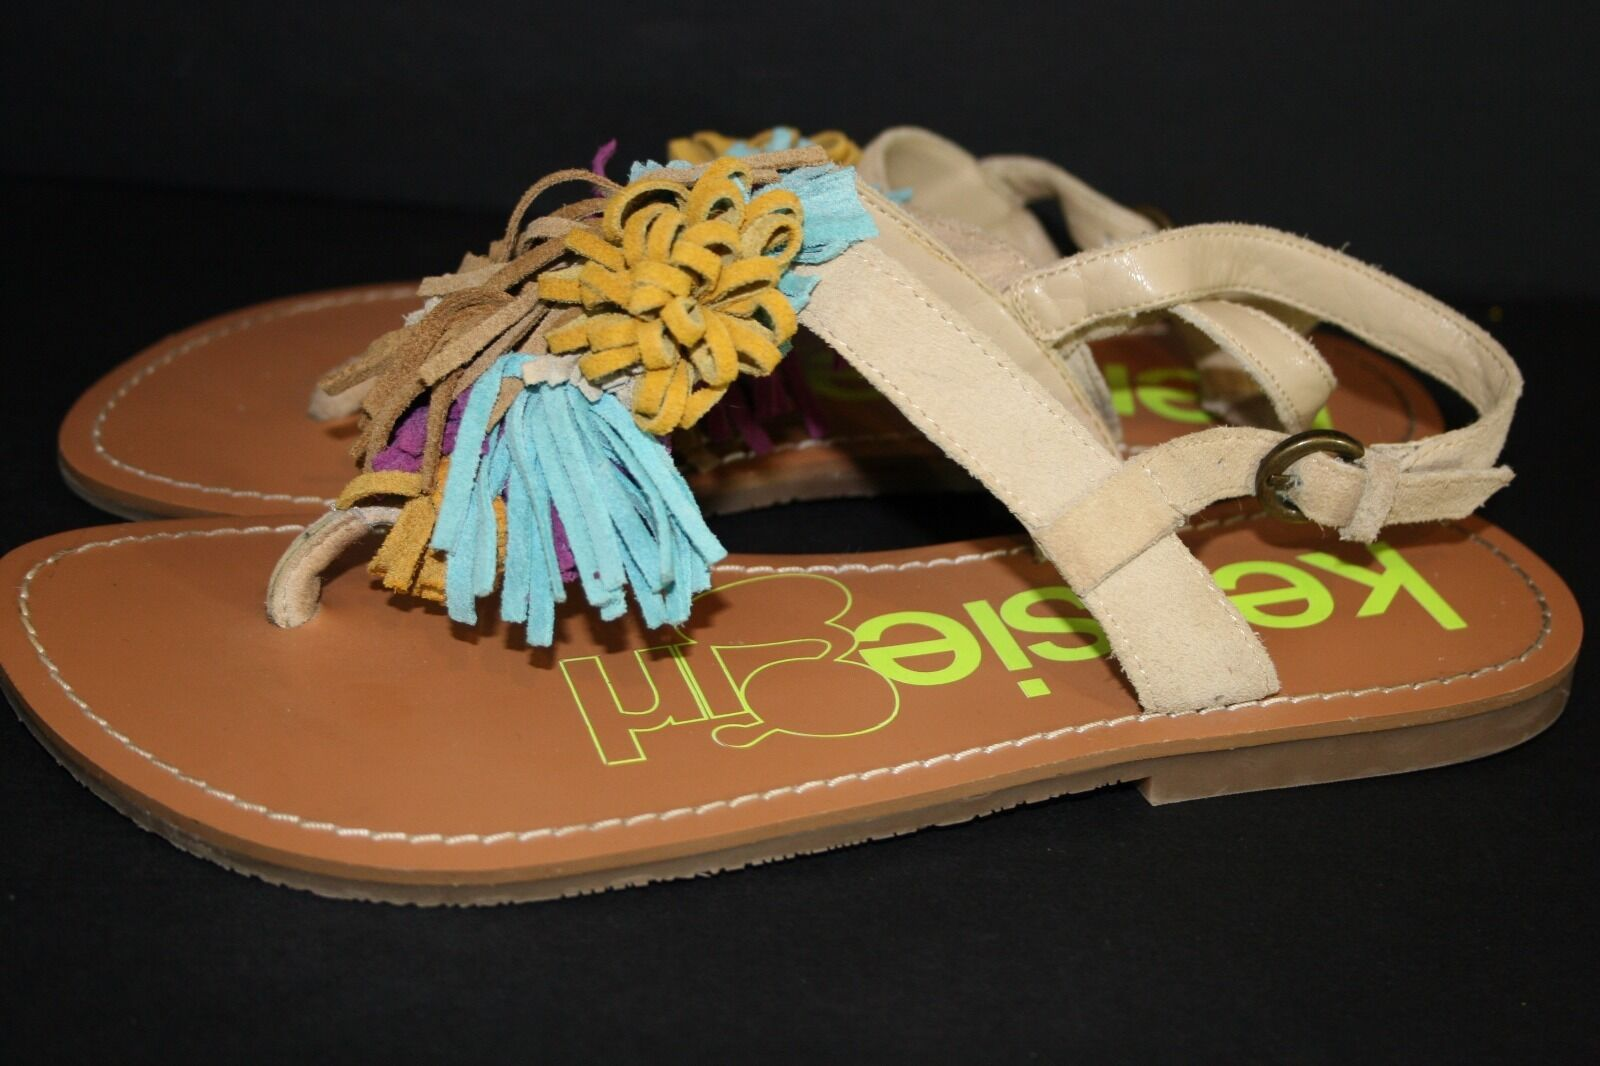 Kensie Girl KG-Shanell Flat Turquoise Suede Tassel Sandal Shoes Brown Turquoise Flat 7B f564c0